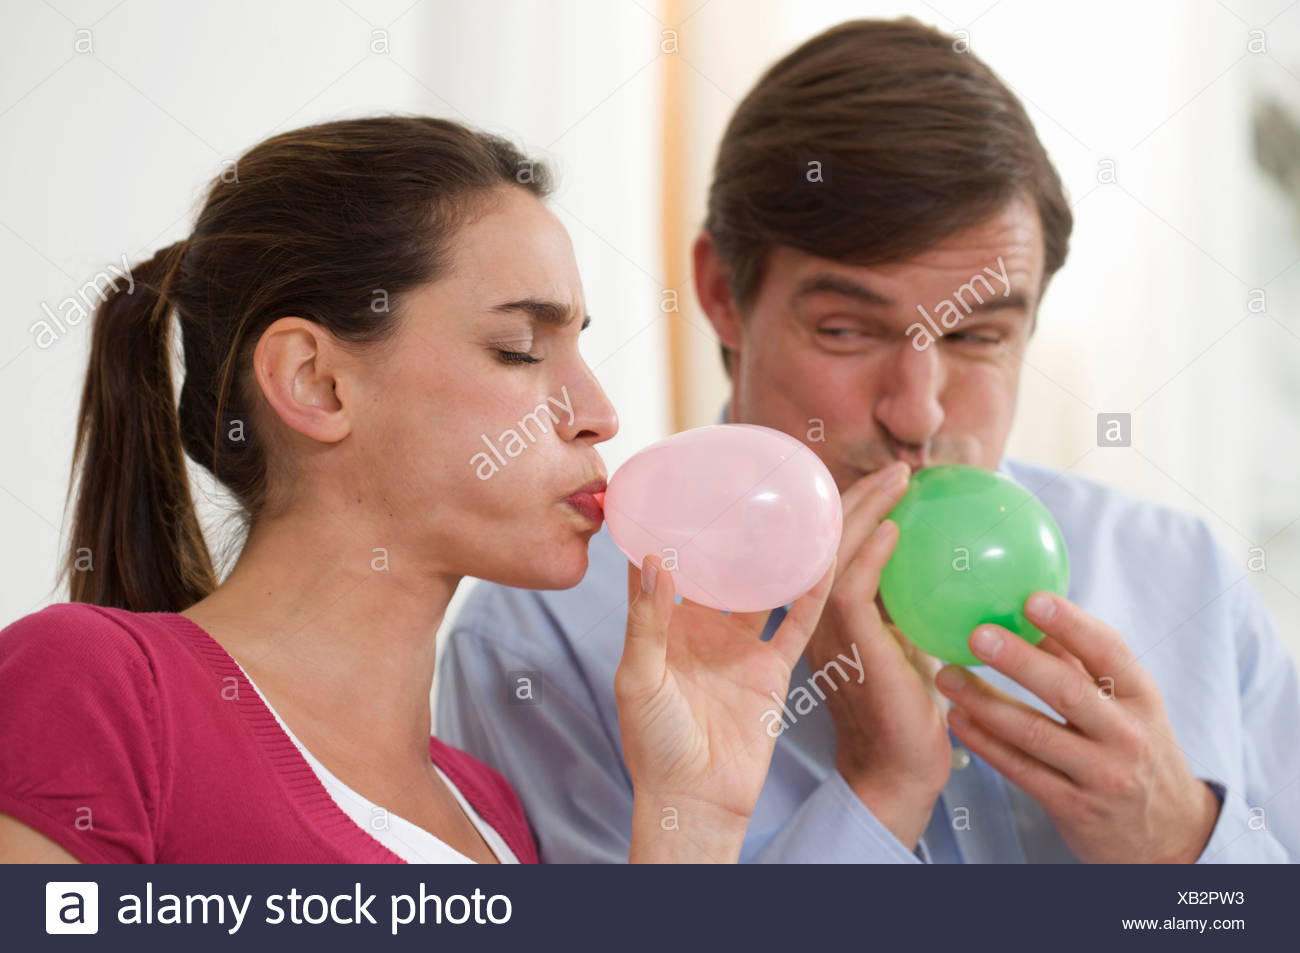 a couple trying to blow balloons - Stock Image